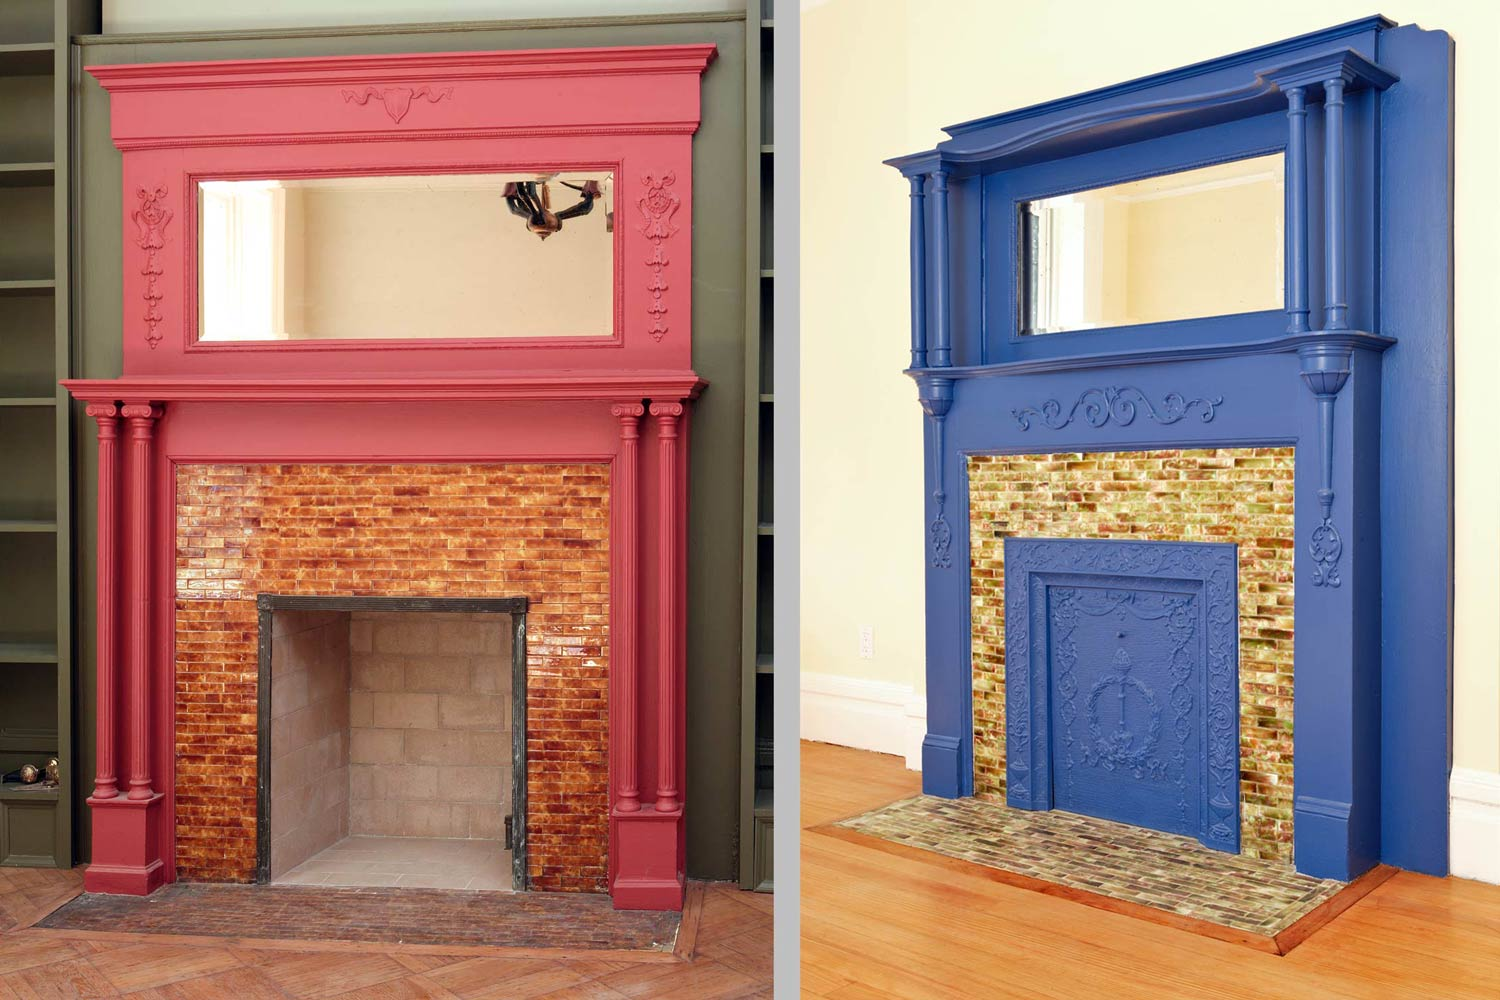 The multiple fireplaces at the Harlem Residence were restored and beautifully detailed.